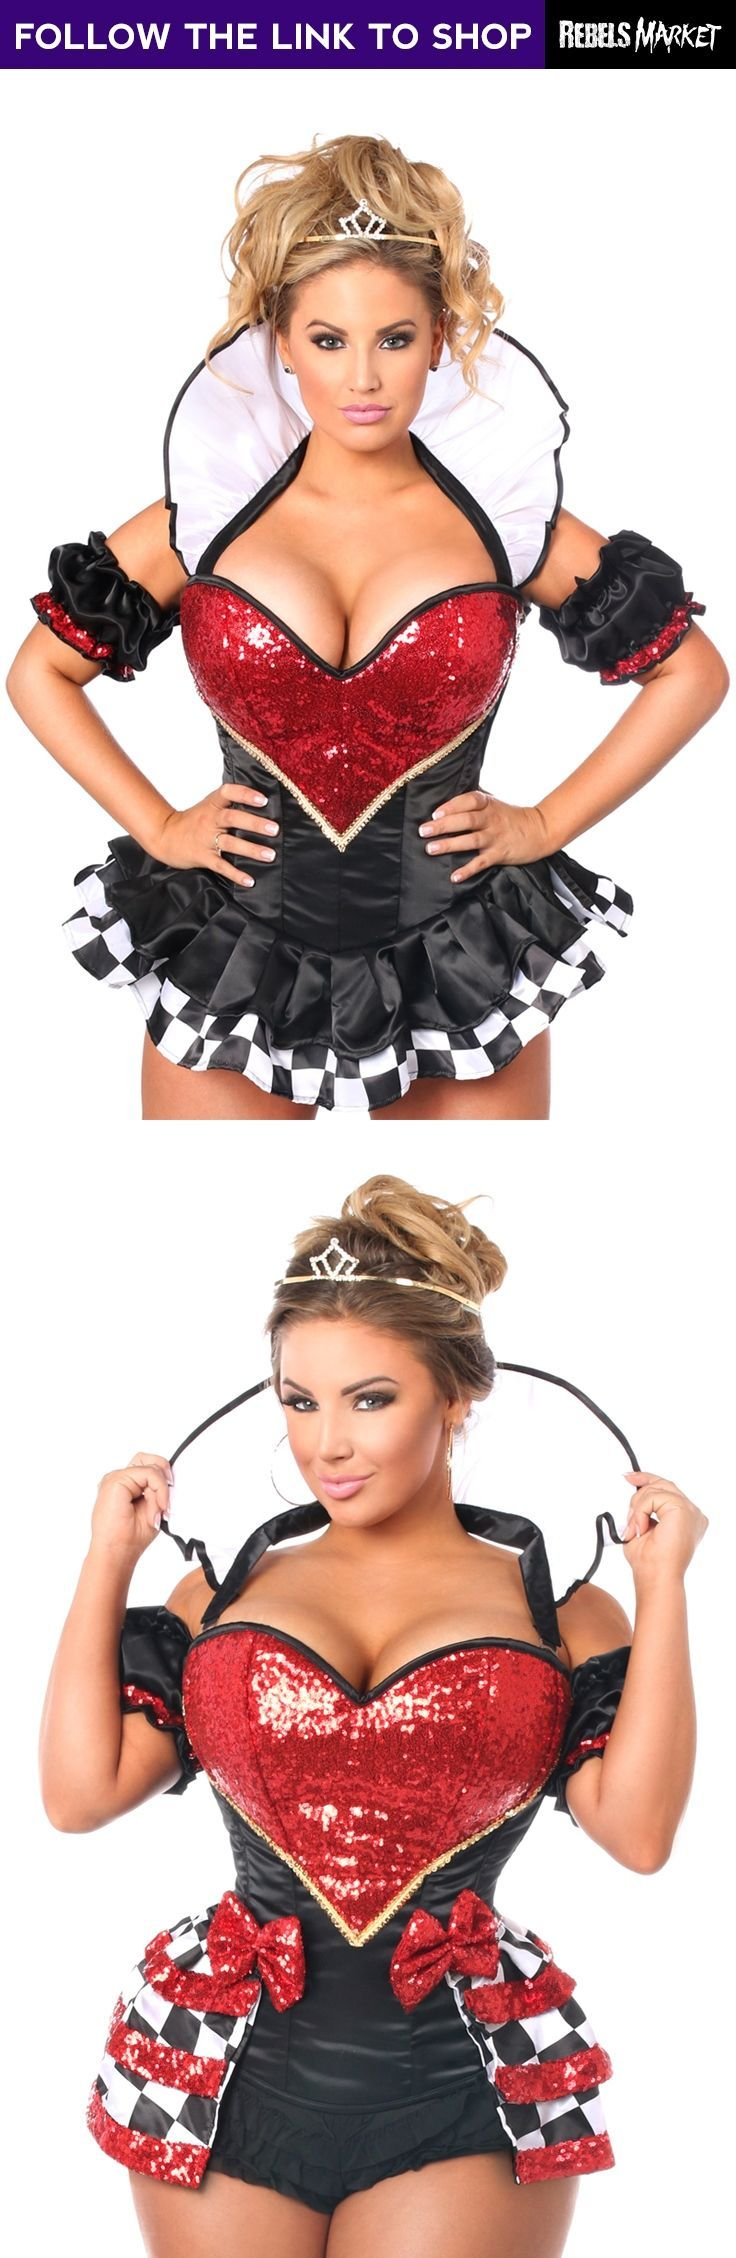 Shop plus size Halloween costumes online at Rebels Market